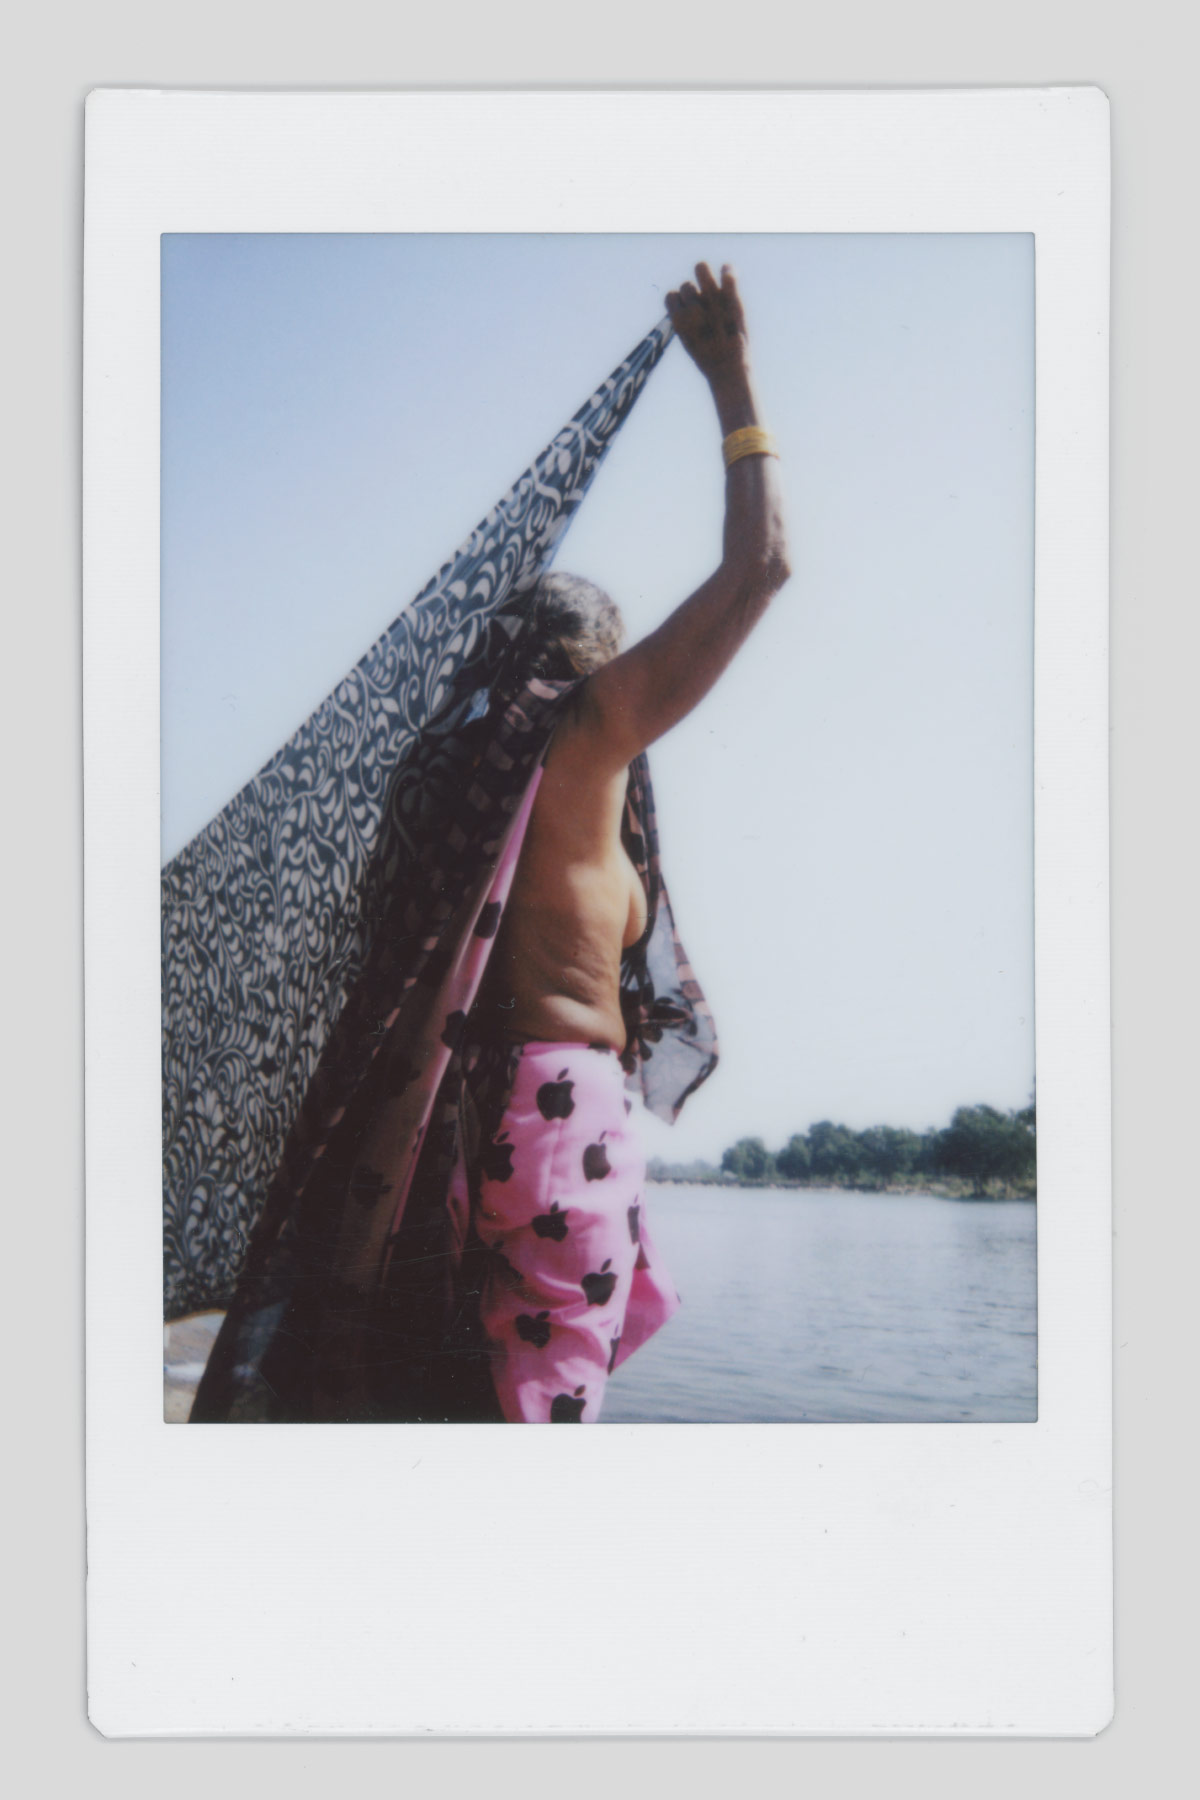 giulio_favotto_india_details_polaroid_instax_11